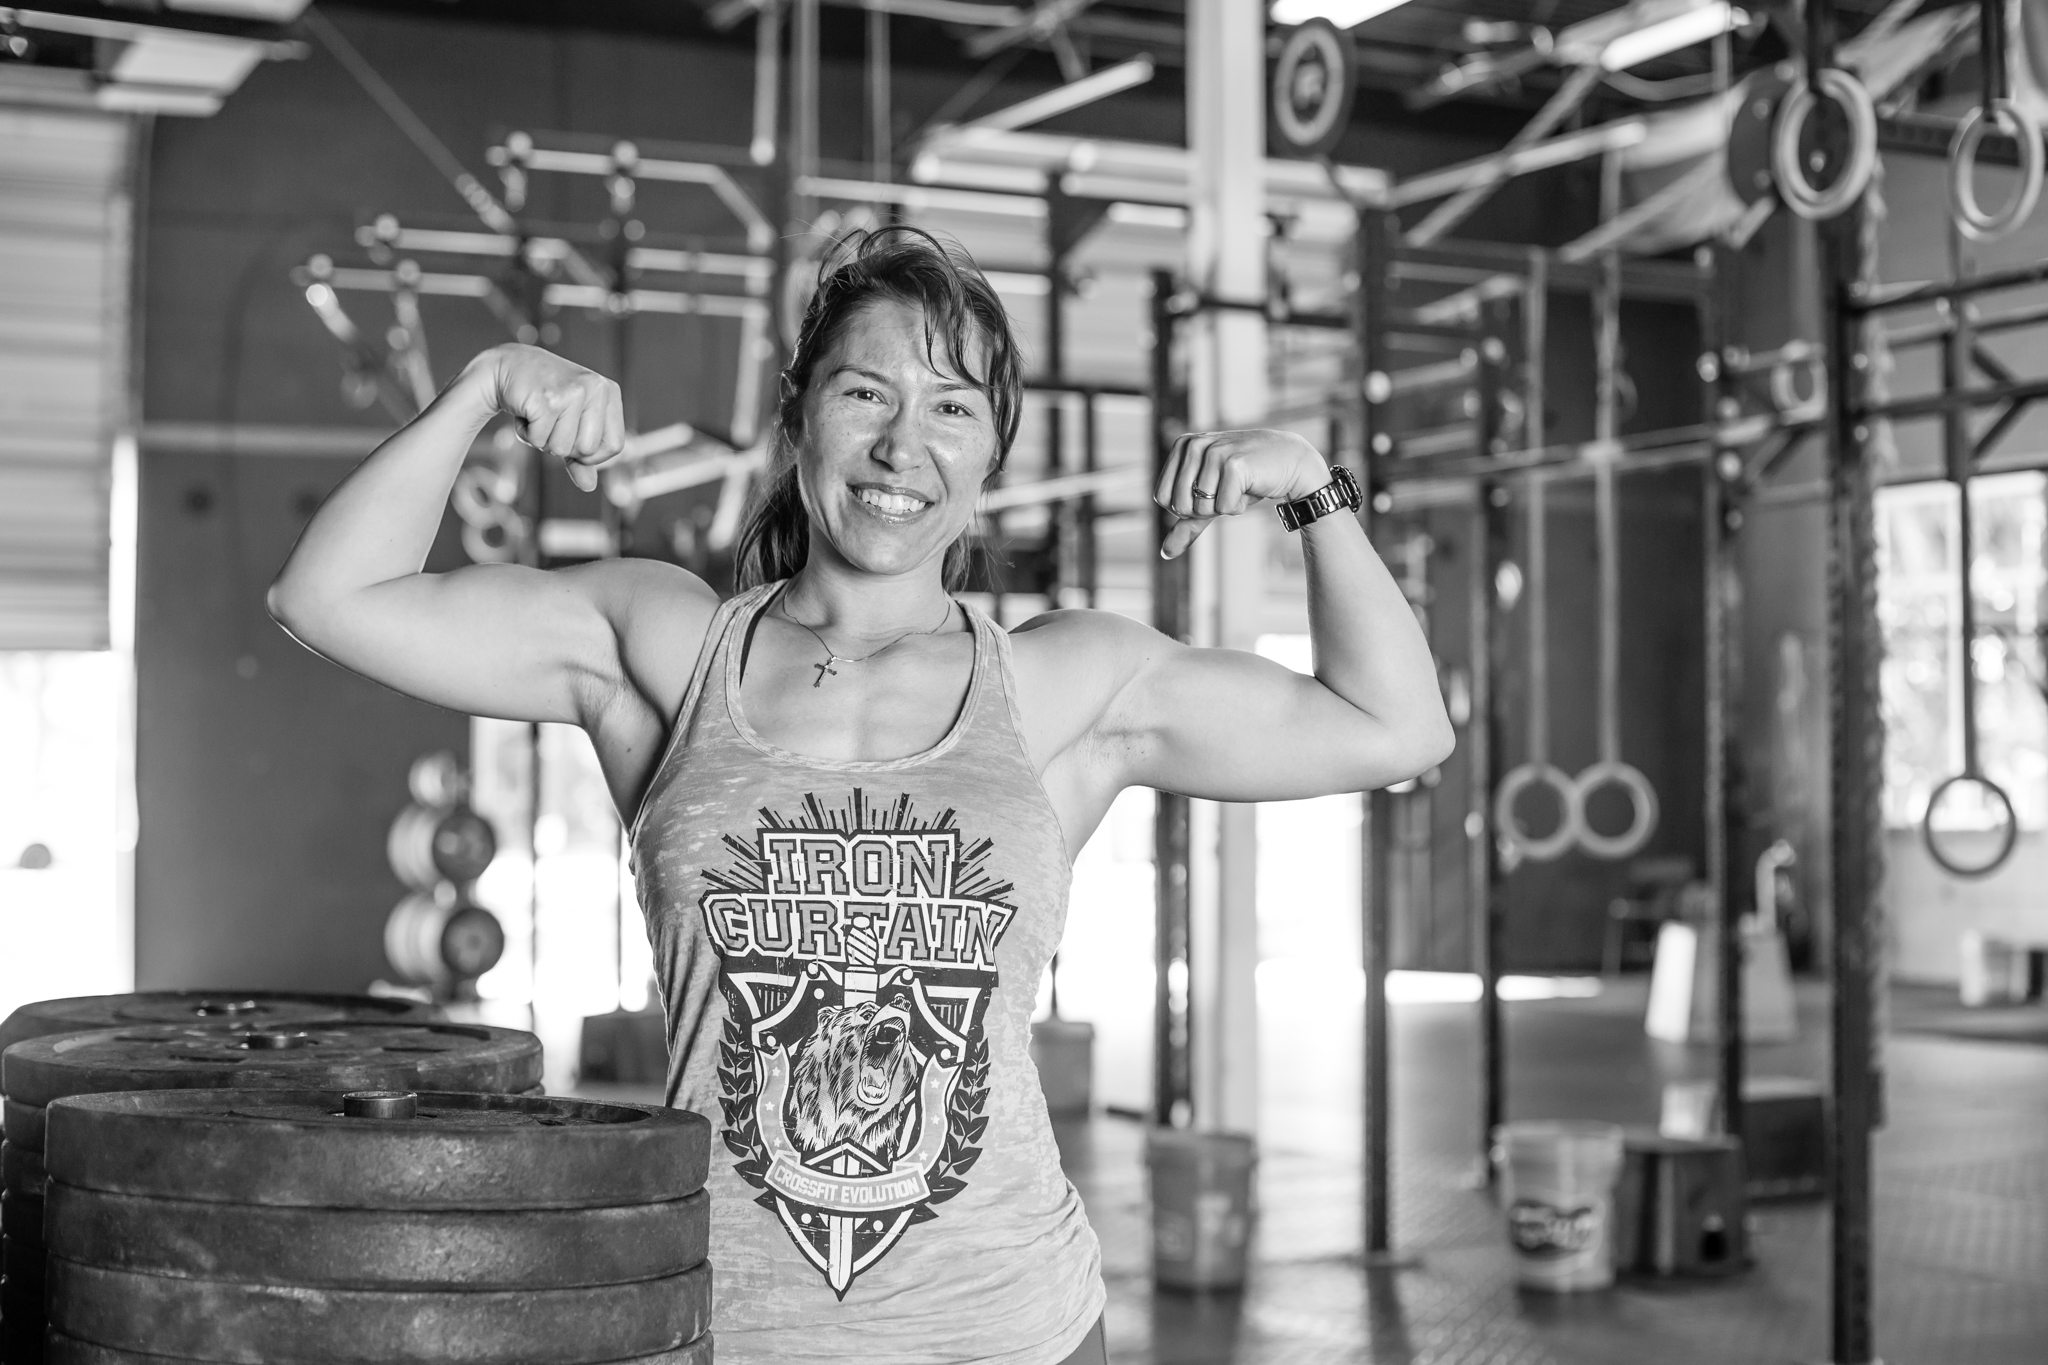 Monique Ames /  Monique@CrossFitEvolution.com  Owner, Operations Manager, Health & Wellness Coach CFEvo since 2007  Certifications: CrossFit Level-1 Trainer, CrossFit Nutrition, CrossFit Gymnastics, Olympic Weightlifting Coach, Performance Weightlifting Coach  +25 years experience in training, managing, & leading others 2017 & 2016 USA Weightlifting National Masters Champion, Gold 2017 American Masters Champion, Gold 2016 Pan-American Games, Silver CrossFit Journal: contributing writer CrossFit Risk Retention Group: Director (emeritus)  CrossFit FL Affiliate Gathering 2007-2011  Former: U.S. Marine and Law Enforcement